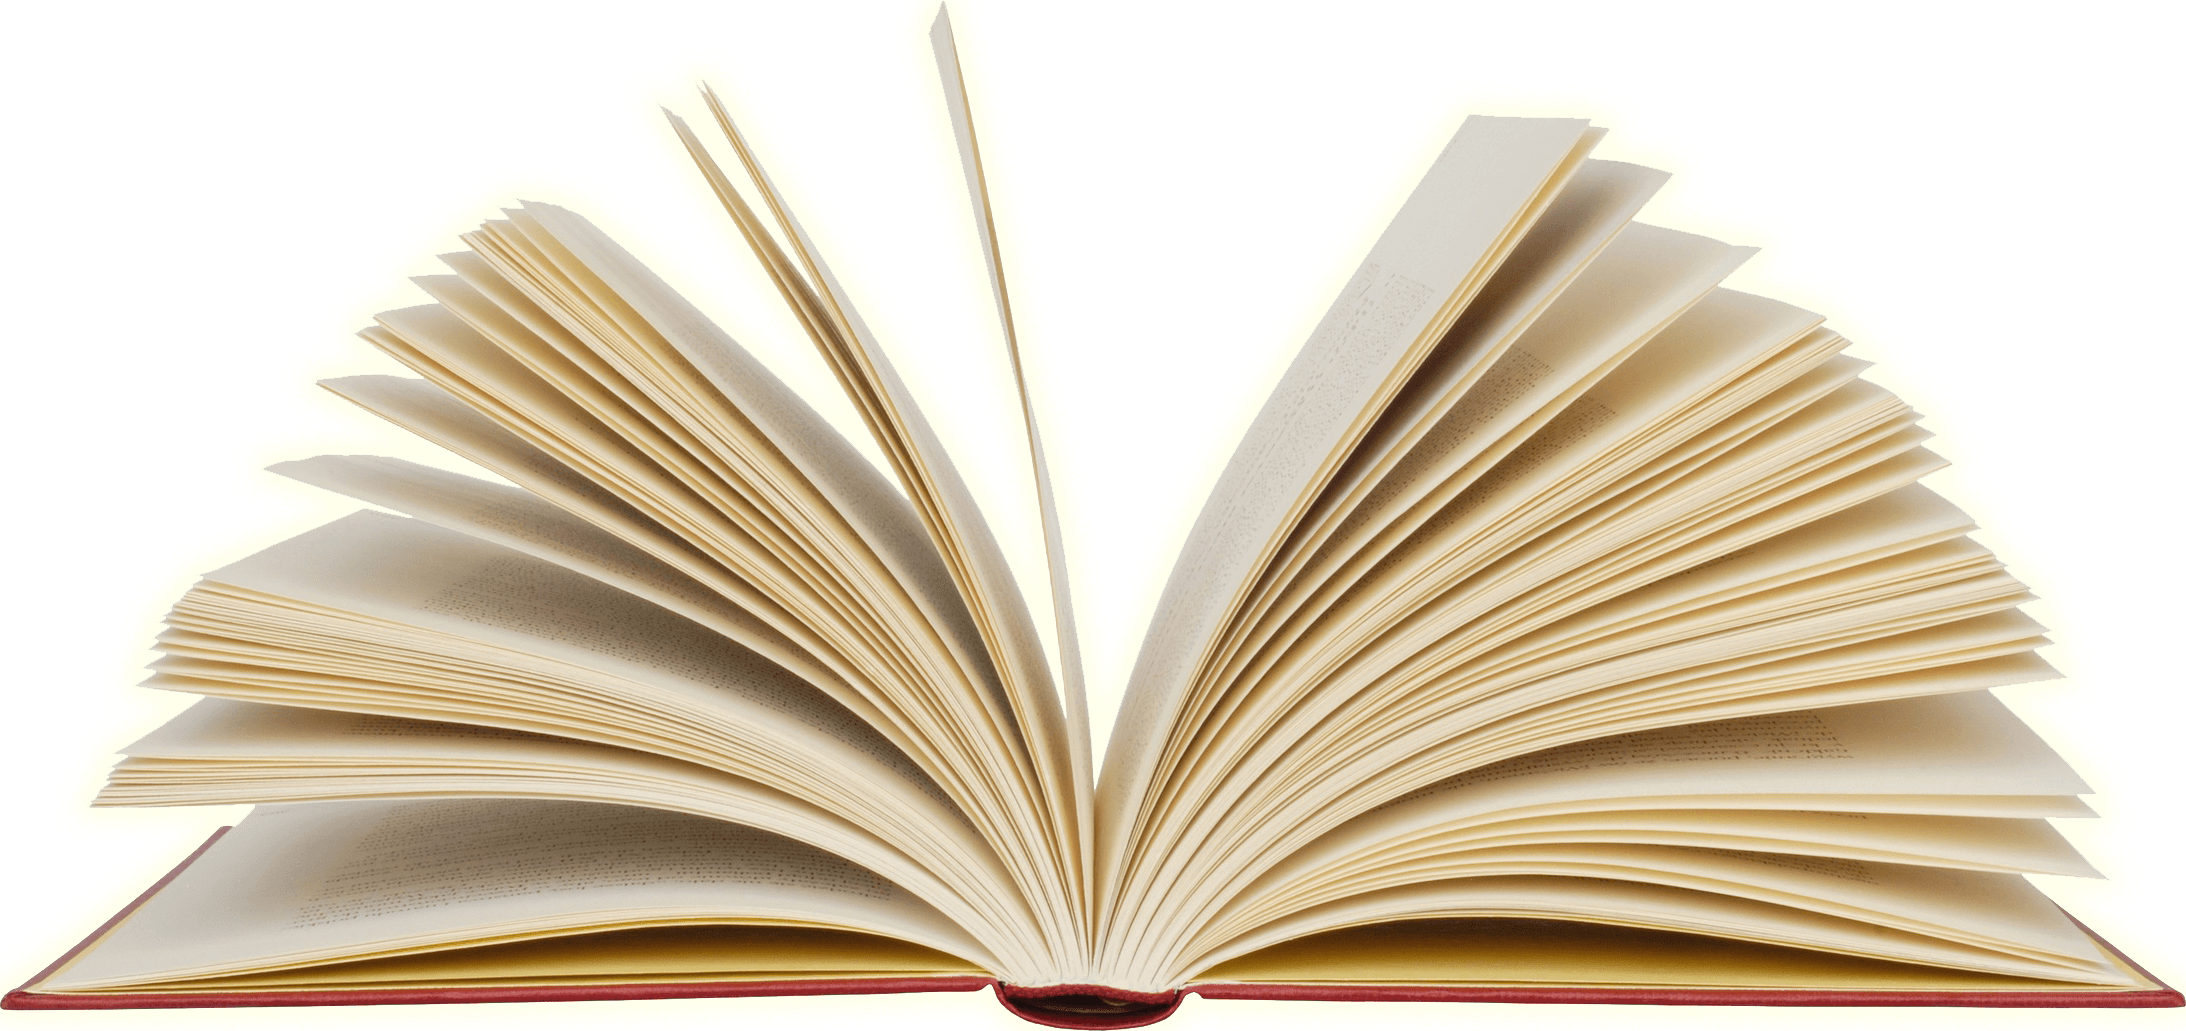 Open book clip art light. Download free png photo